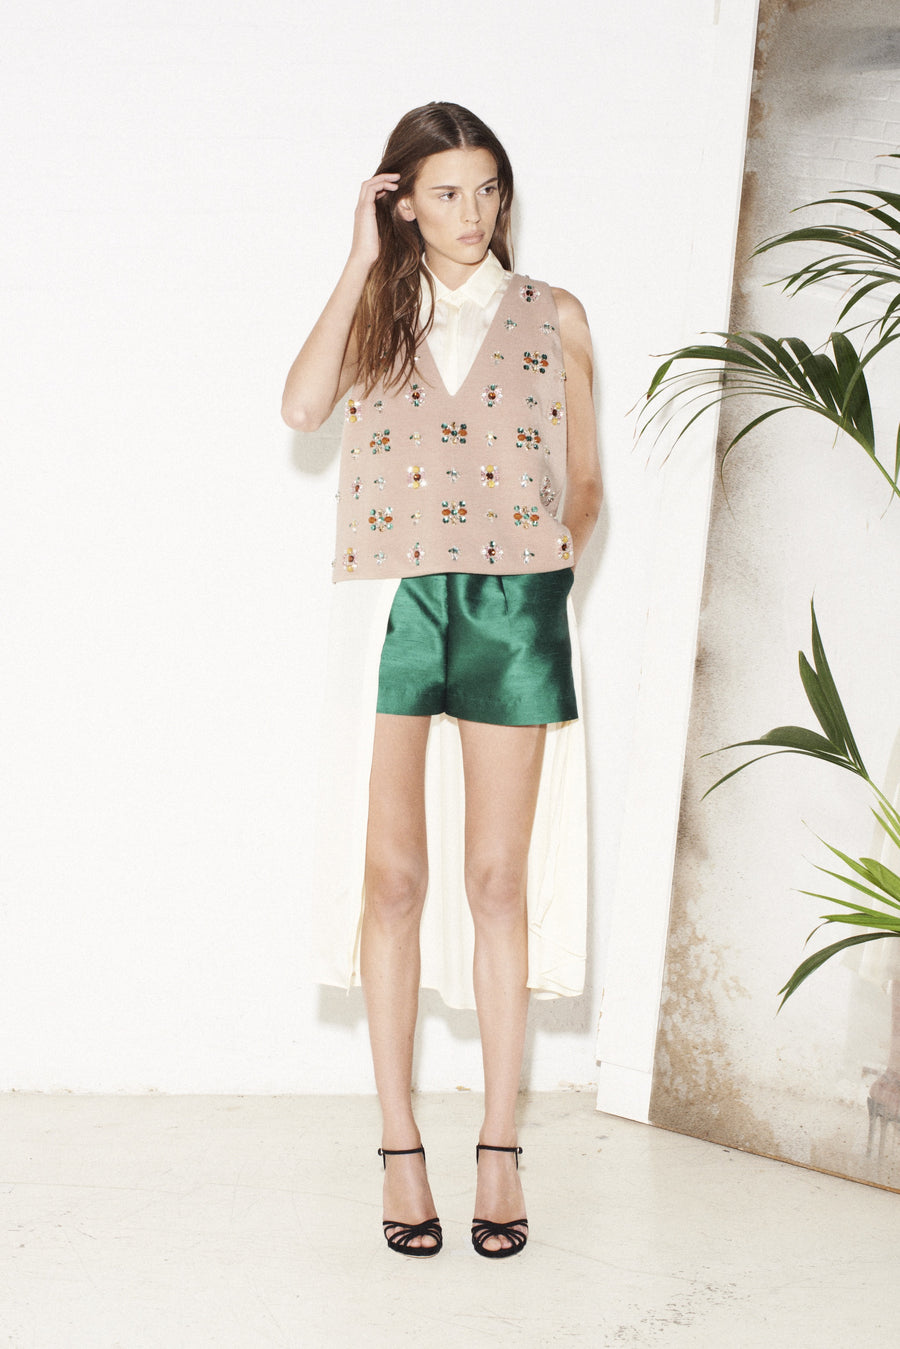 SS2013 / Look 19